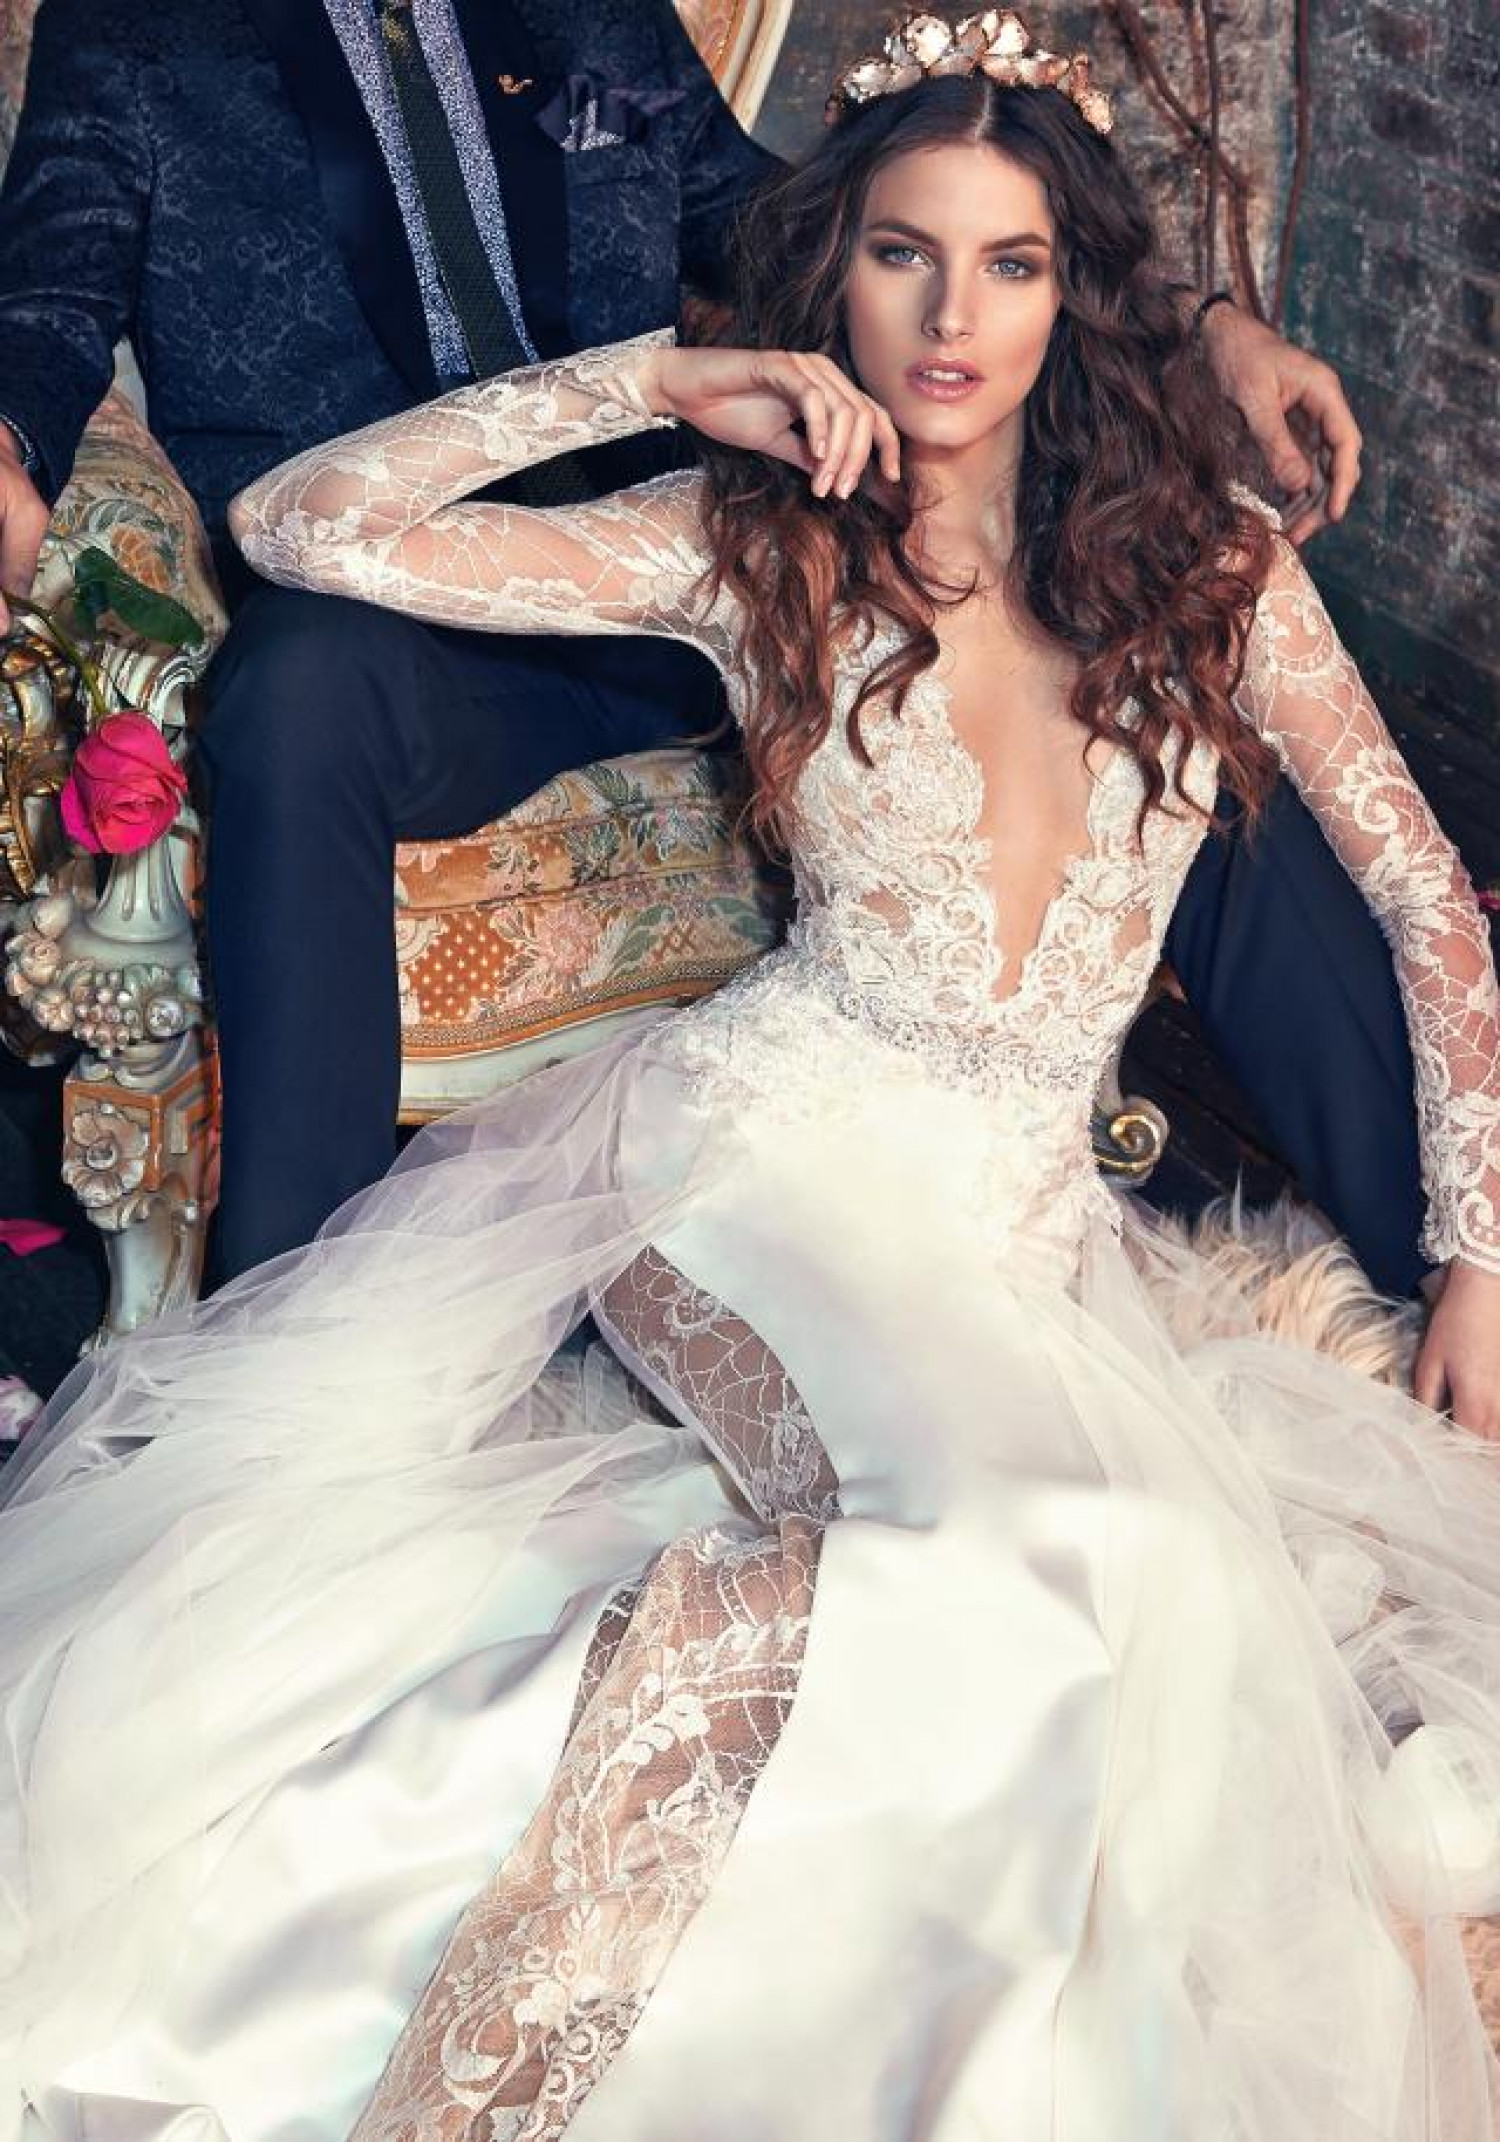 Galia Lahav Tiger Lily Wedding Dress Infographic